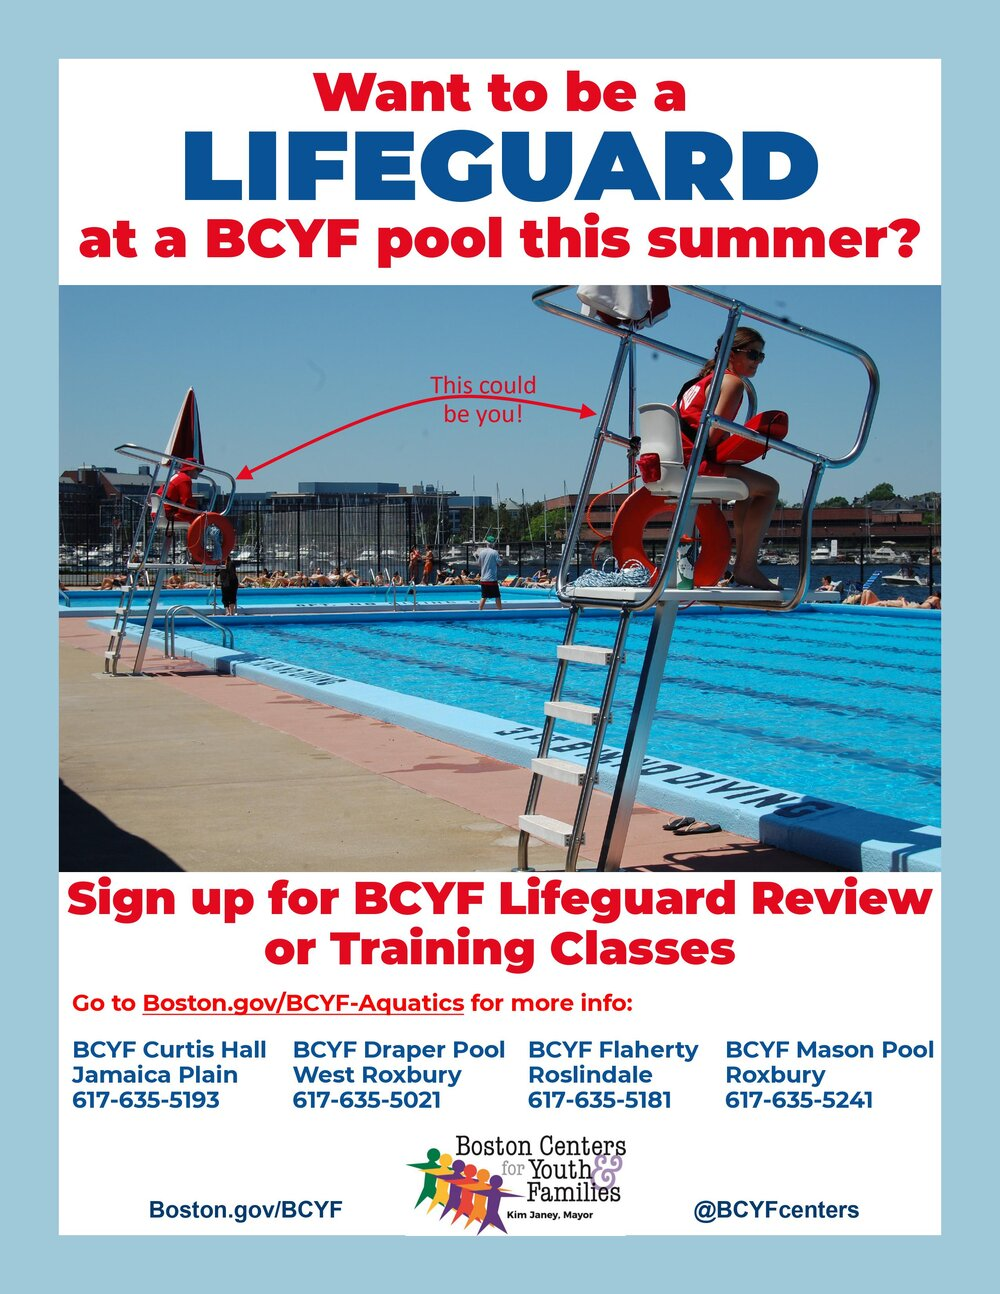 Boston Centers for Youth & Families Lifeguard Review or Training Classes